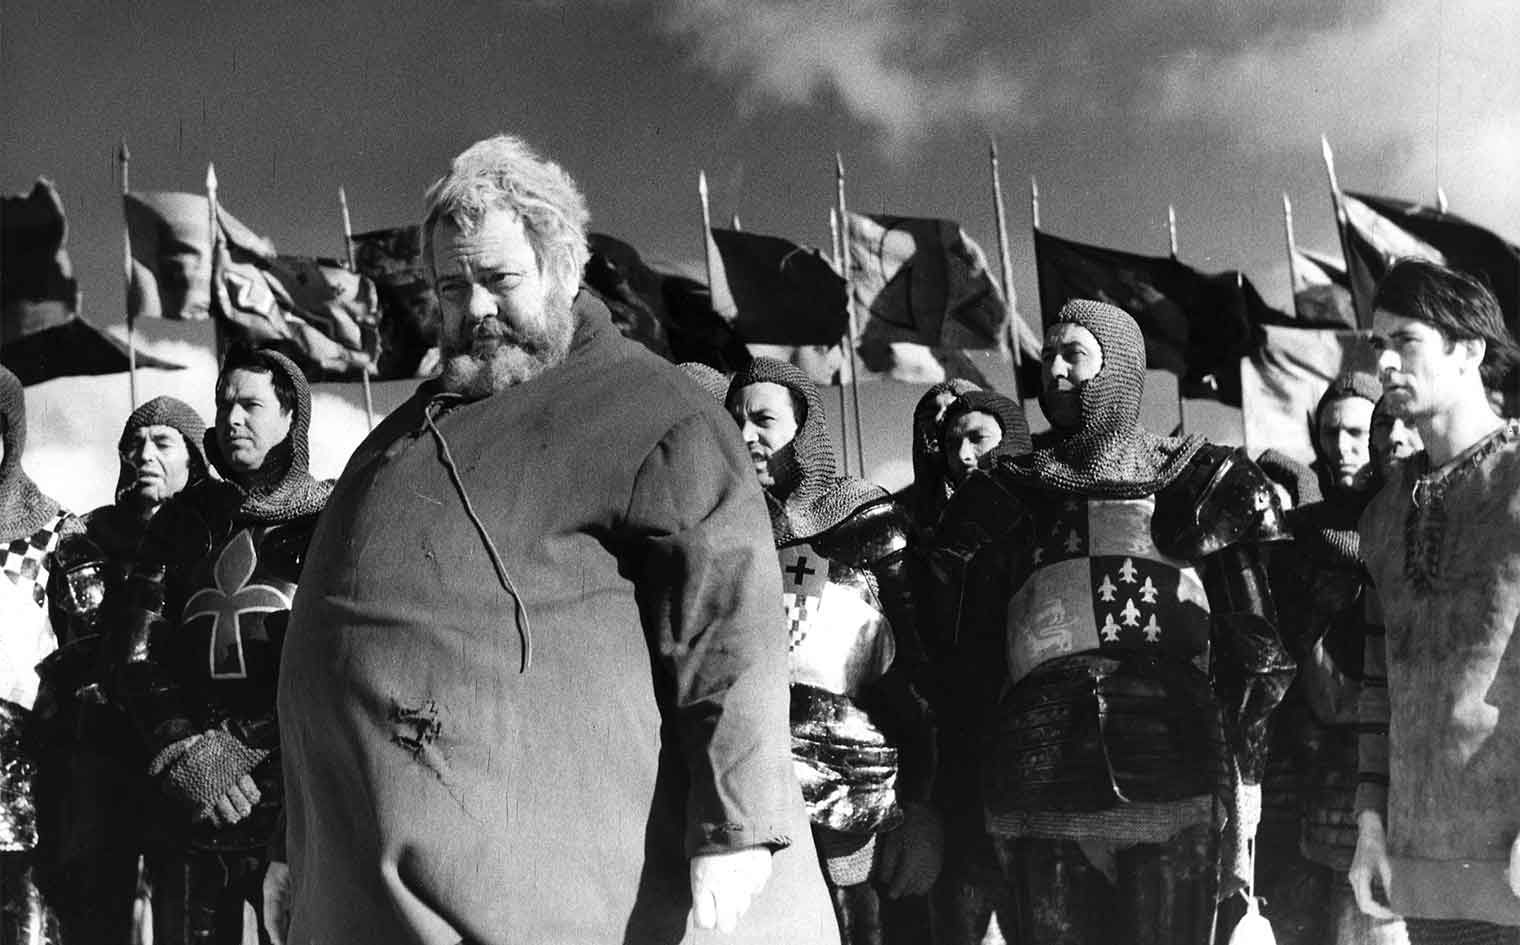 Chimes at Midnight (1965 France/Spain/Switzerland) aka Campanadas a medianoche Directed by Orson Welles Shown left foreground: Orson Welles; far right: Keith Baxter